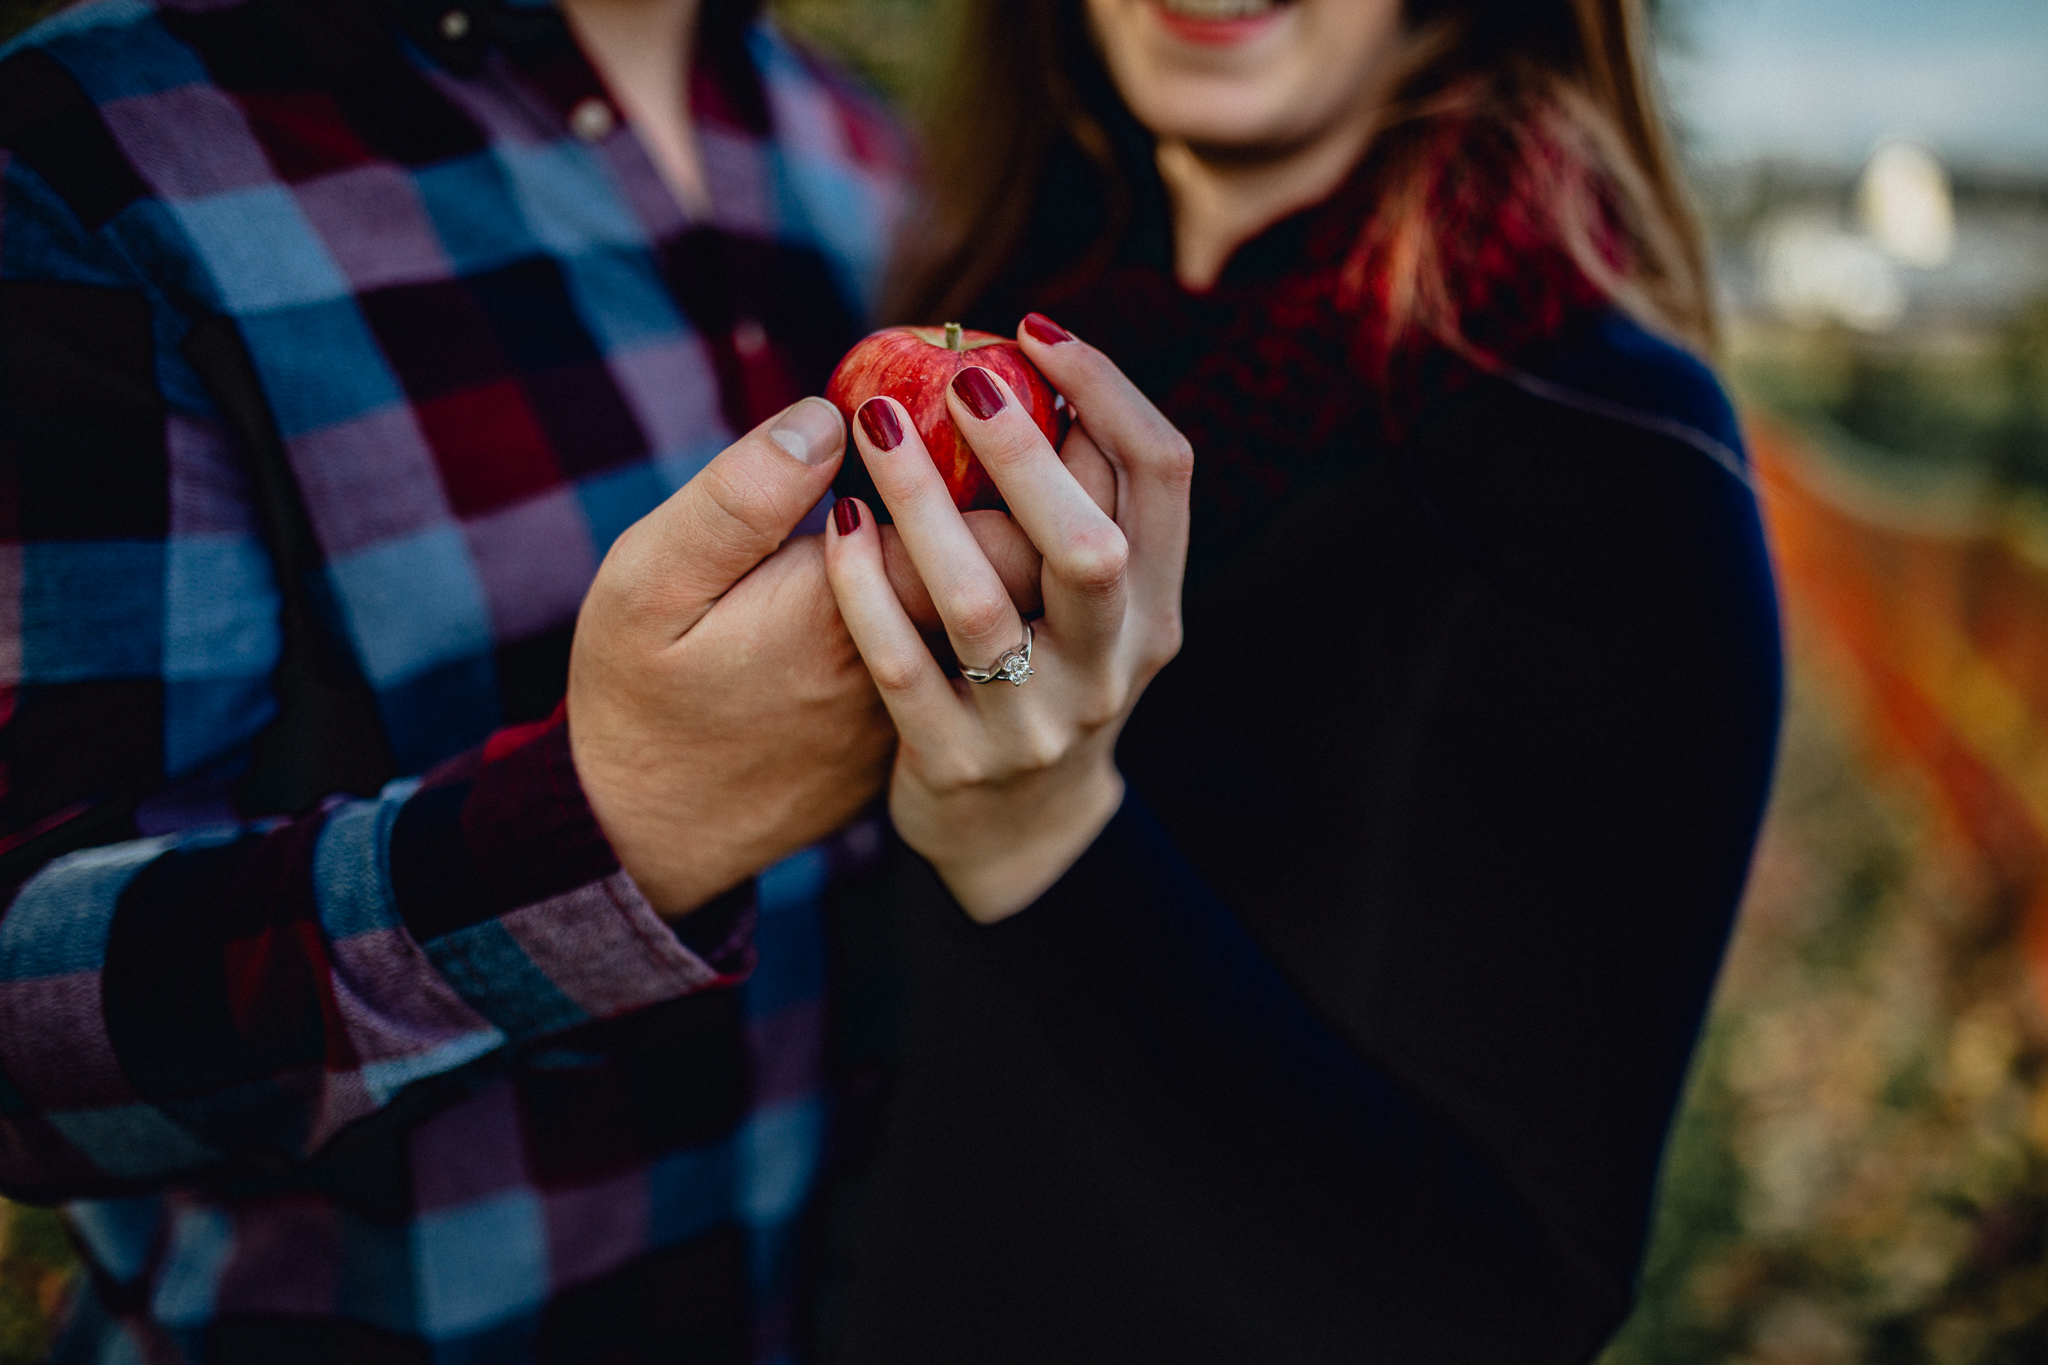 ENENGAGEd-couple-holding-apple-in-apple-orchard.jpgGAGEd-couple-posing-in-apple-orchard.jpg